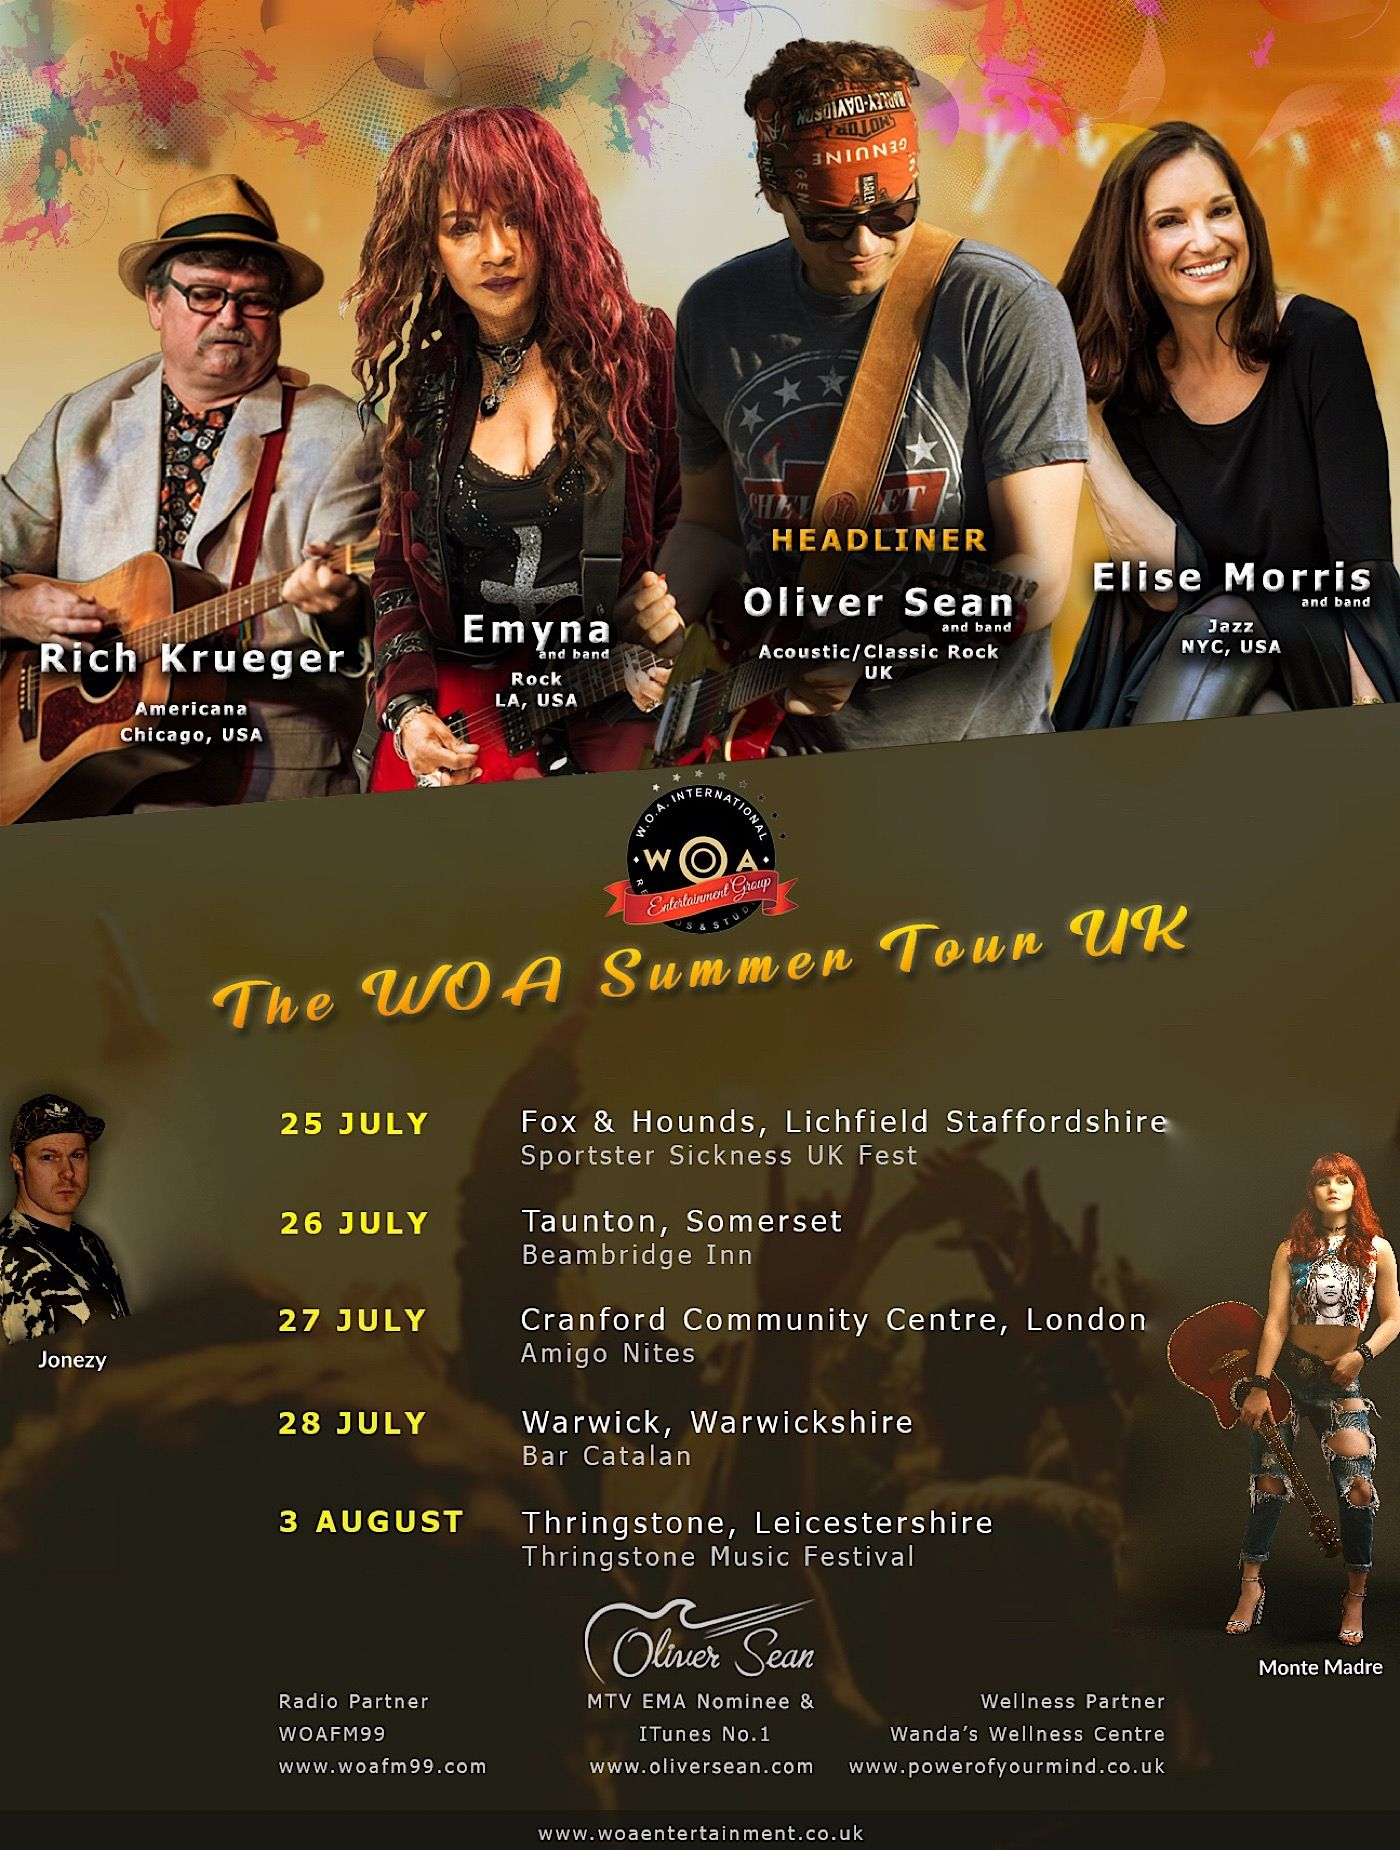 WOA Summer Tour UK 2019